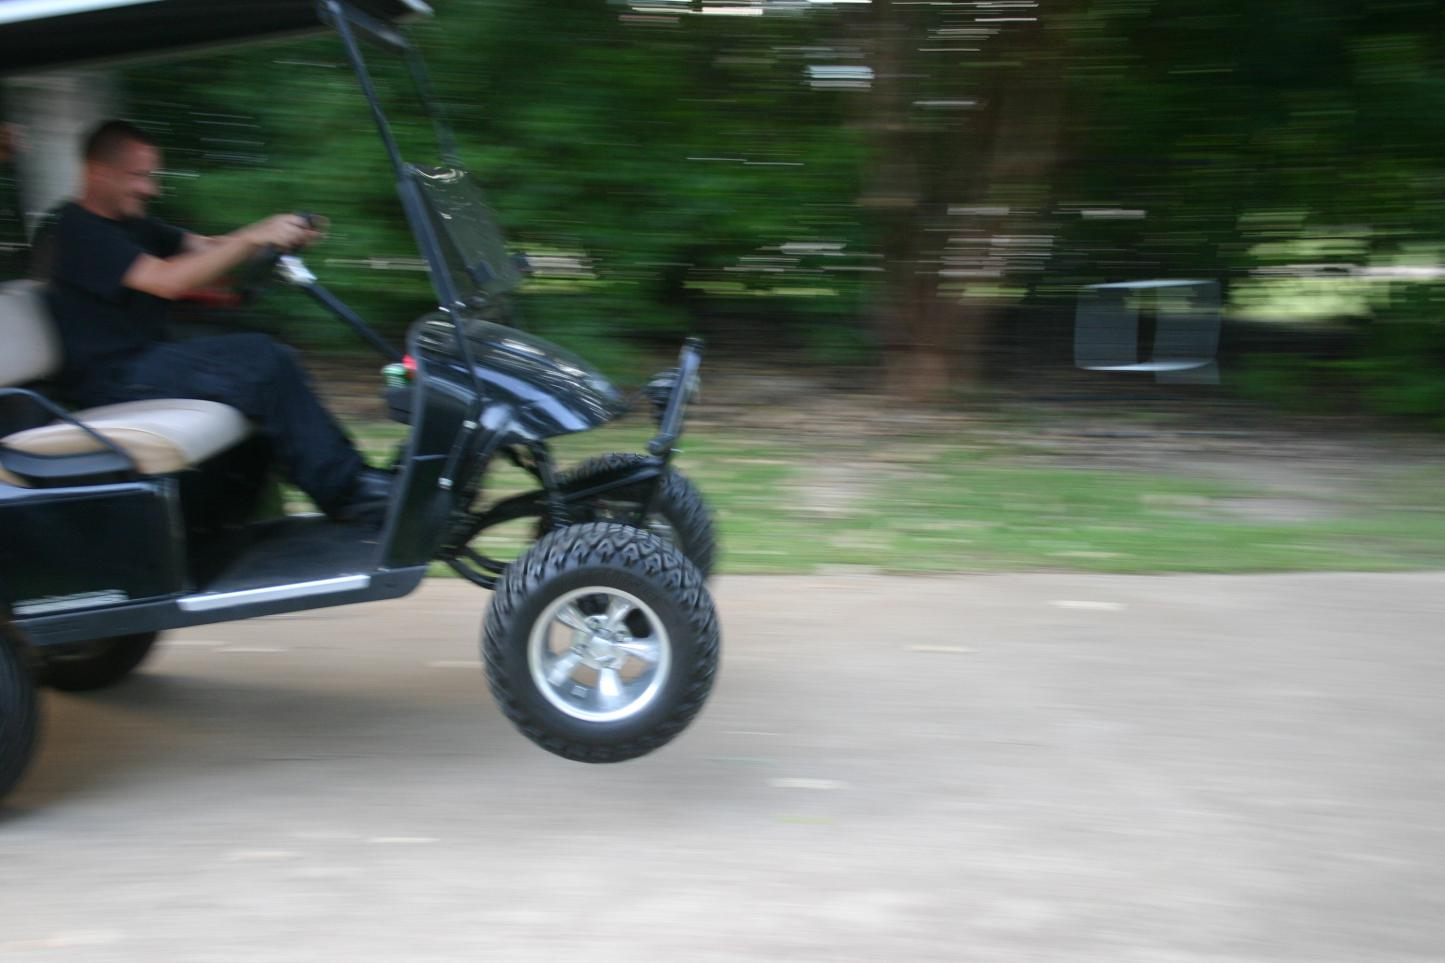 golf cart to hunting buggy ideas Golf Cart Stabilizers on golf players, golf handicap, golf card, golf buggy, golf games, golf tools, golf accessories, golf words, golf cartoons, golf hitting nets, golf machine, golf girls, golf trolley,